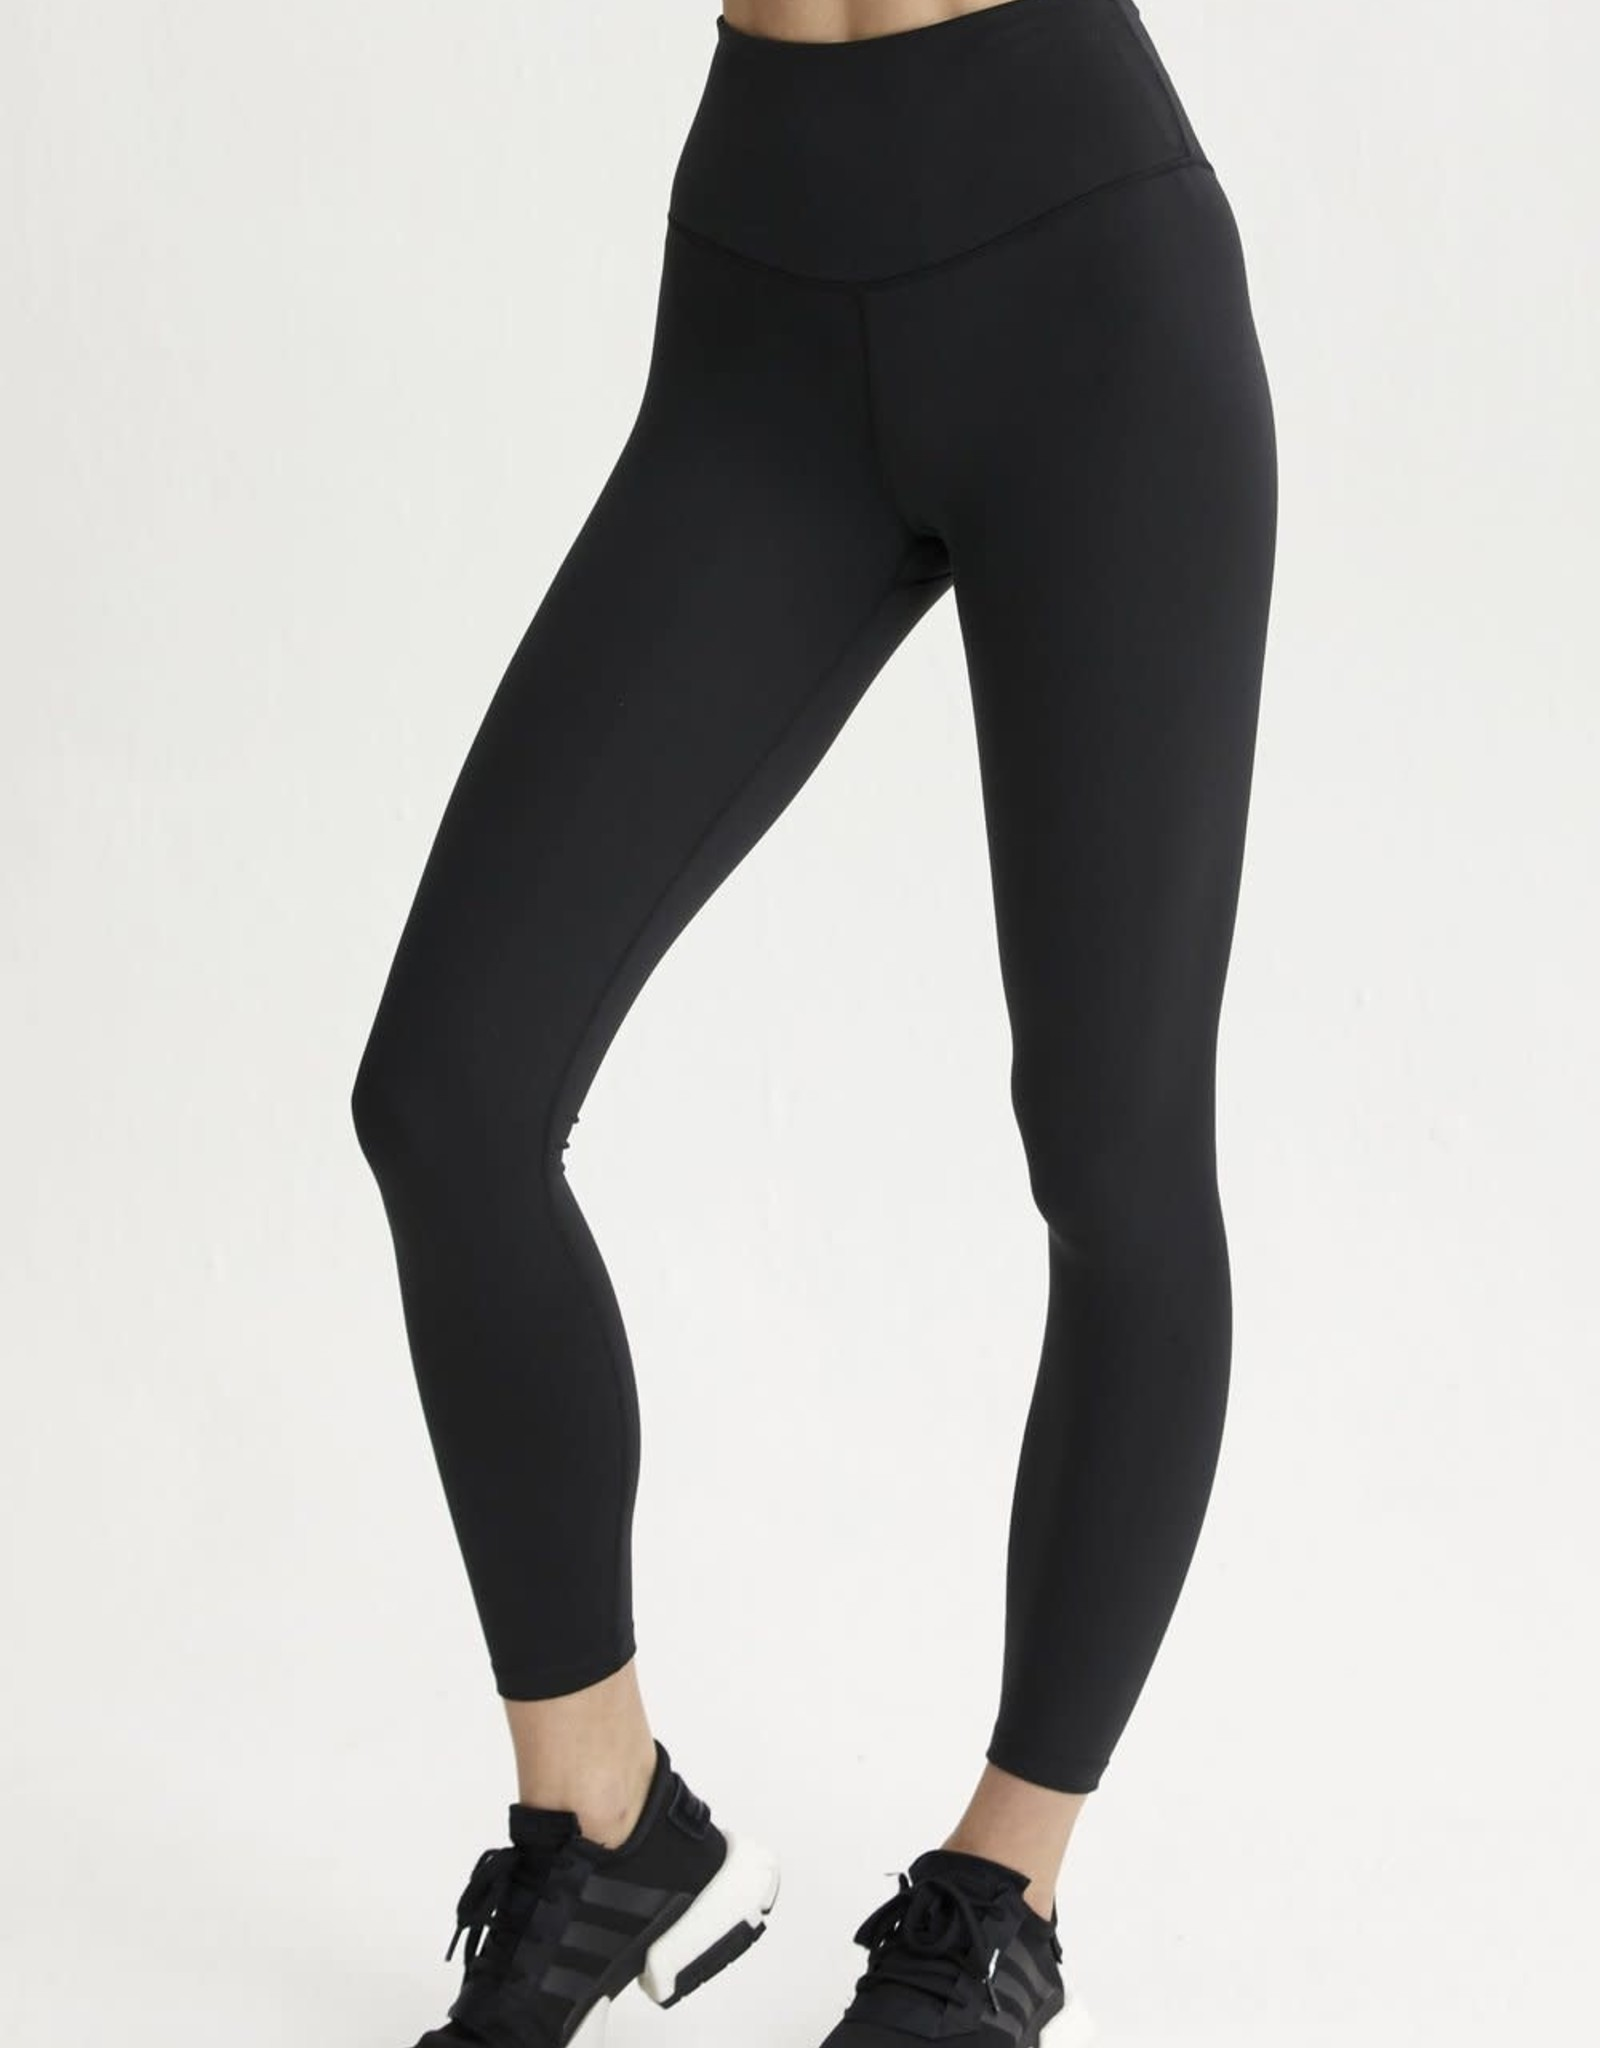 VARLEY - Blackburn Legging